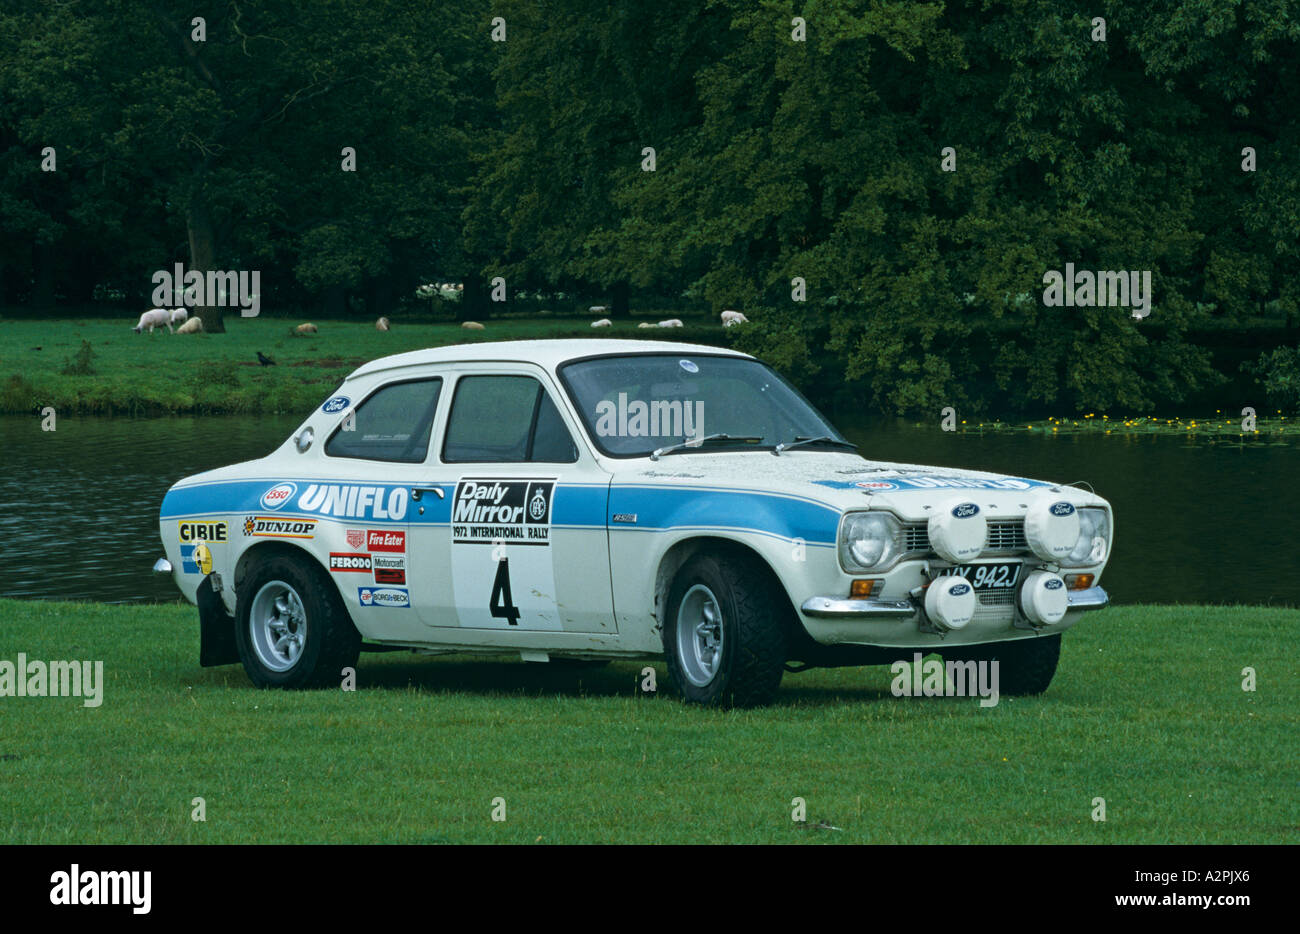 ford-escort-mk1-rally-car-A2PJX6.jpg